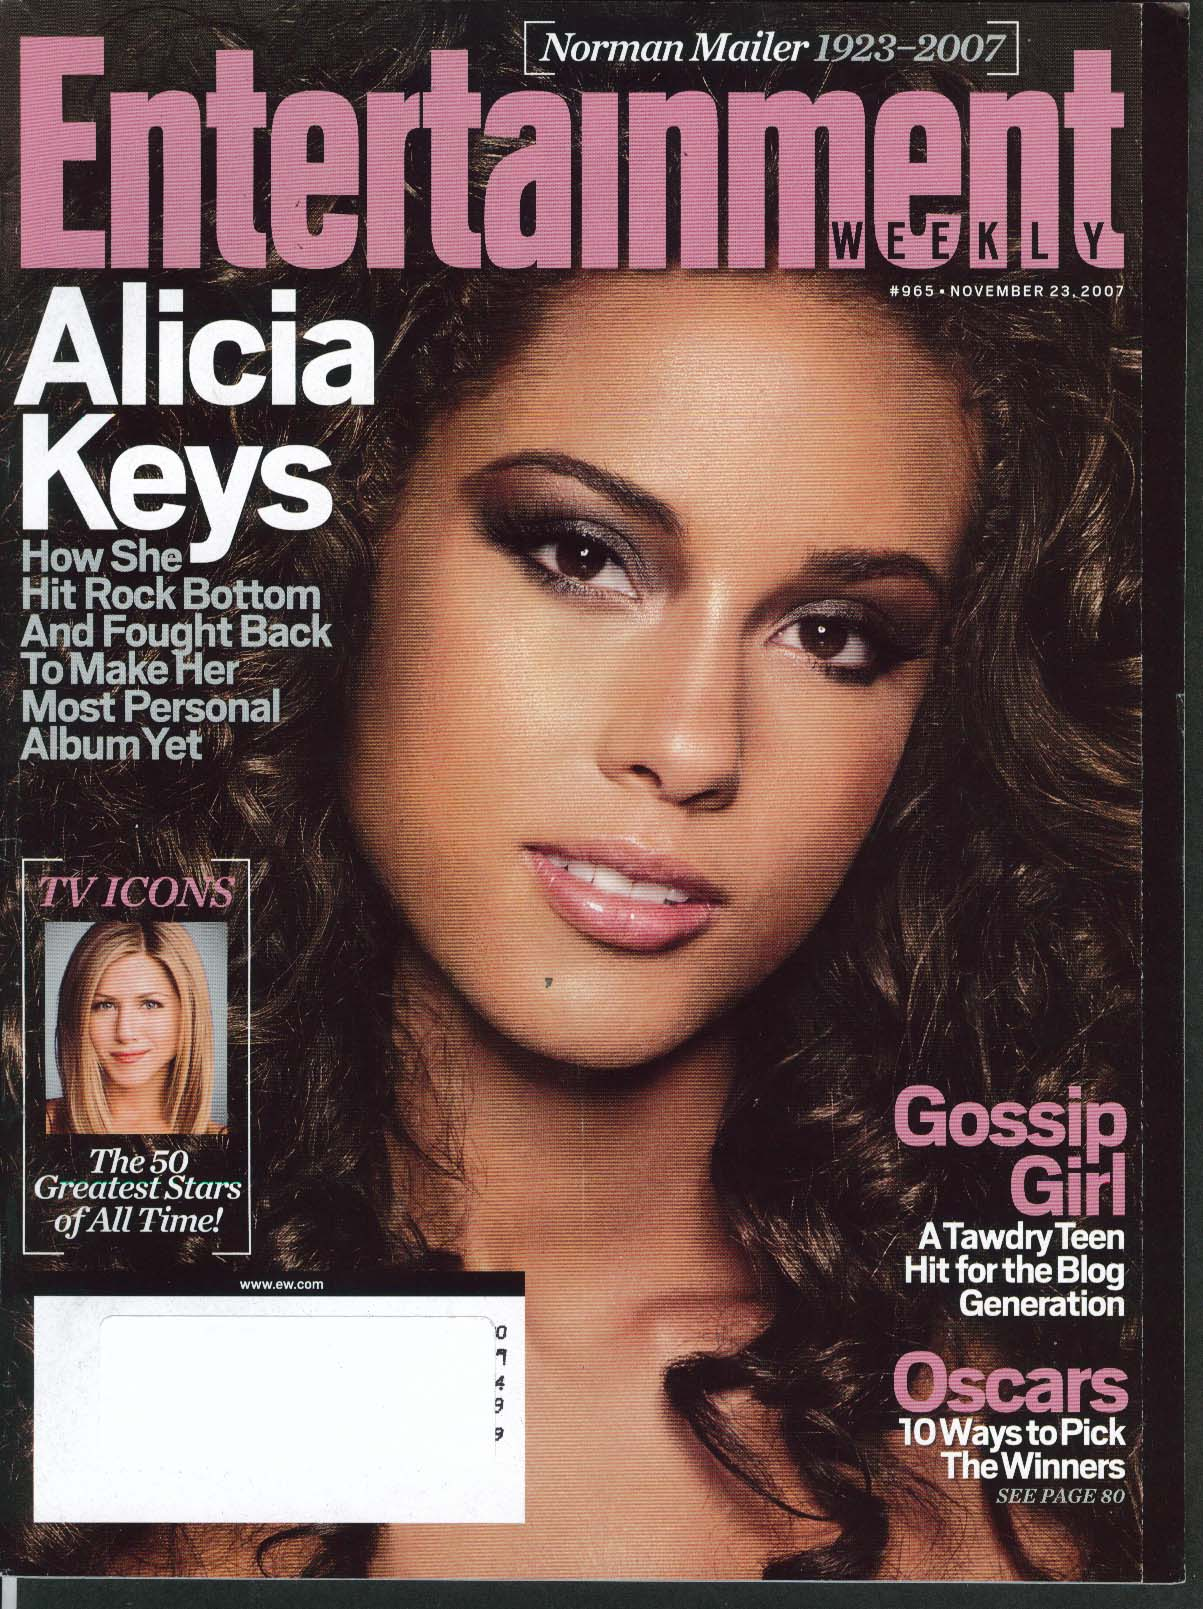 Image for ENTERTAINMENT WEEKLY #965 Alicia Keys Jennifer Aniston Norman Mailer 11/23 2007